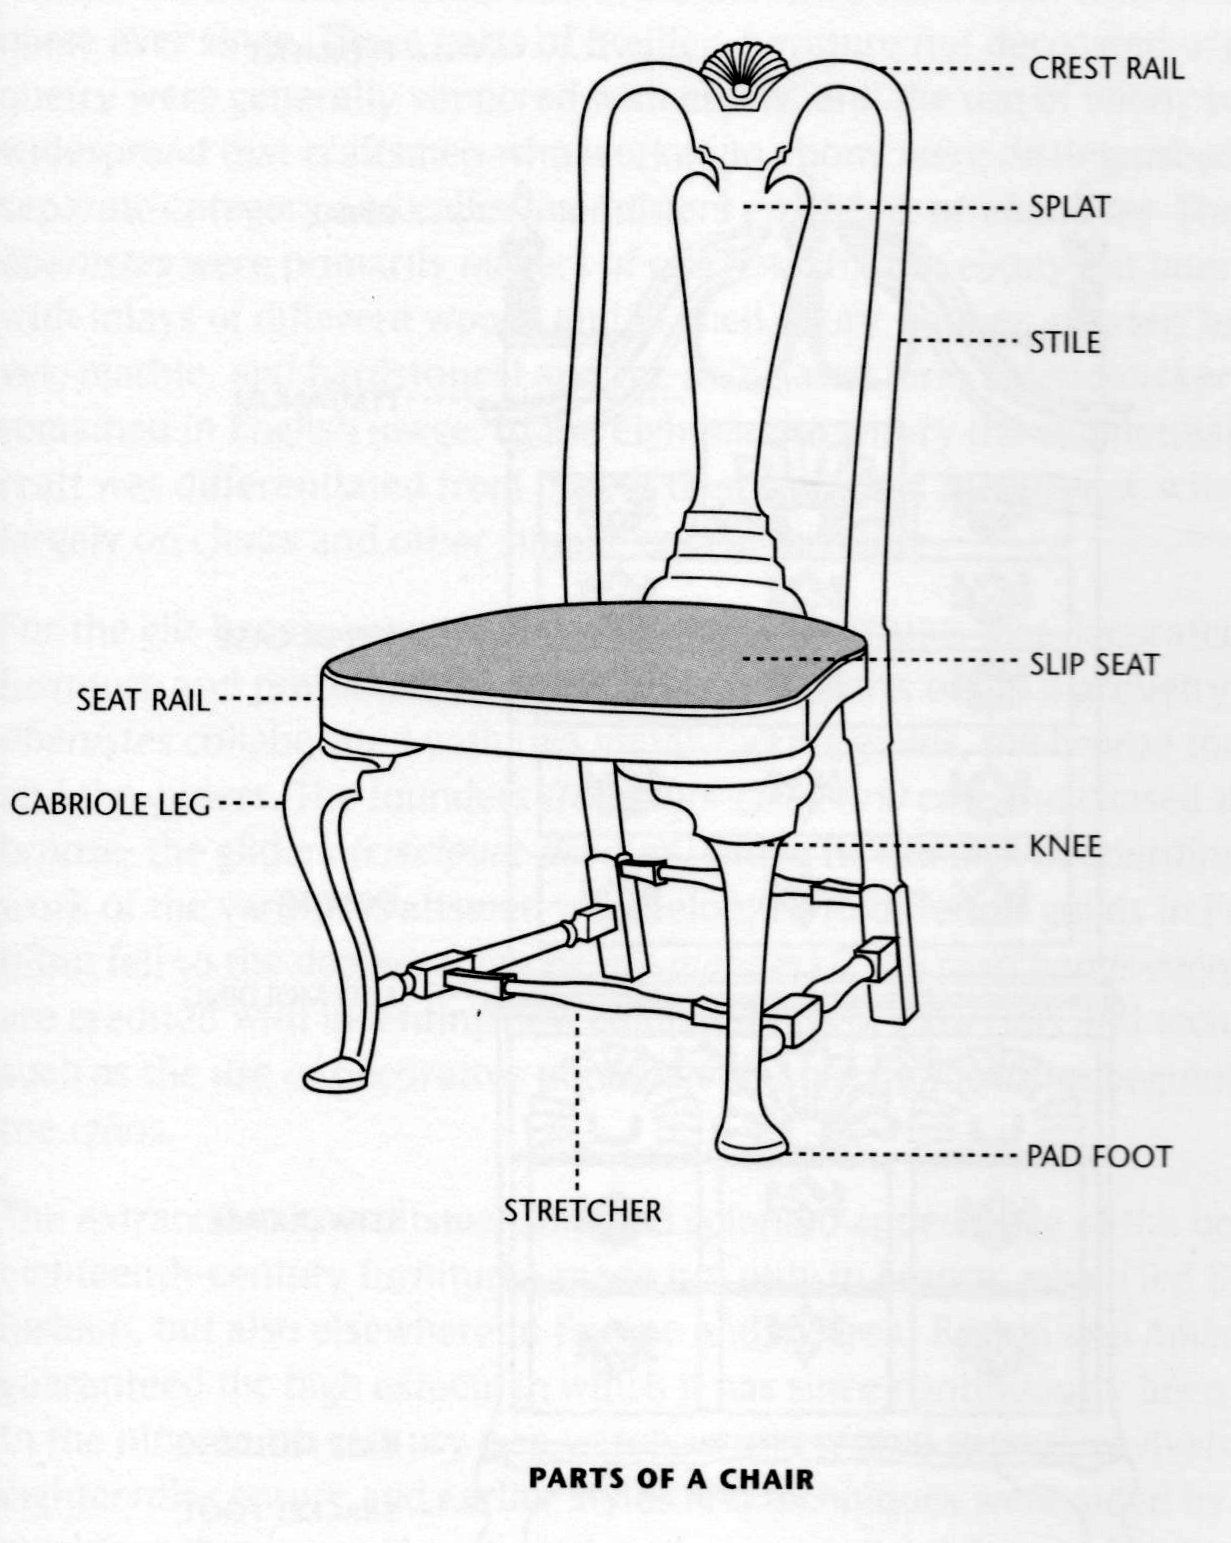 Design Dictionary Splat Stile Or Cabriole Queen Anne Furniture Drawing Furniture Neoclassical Furniture